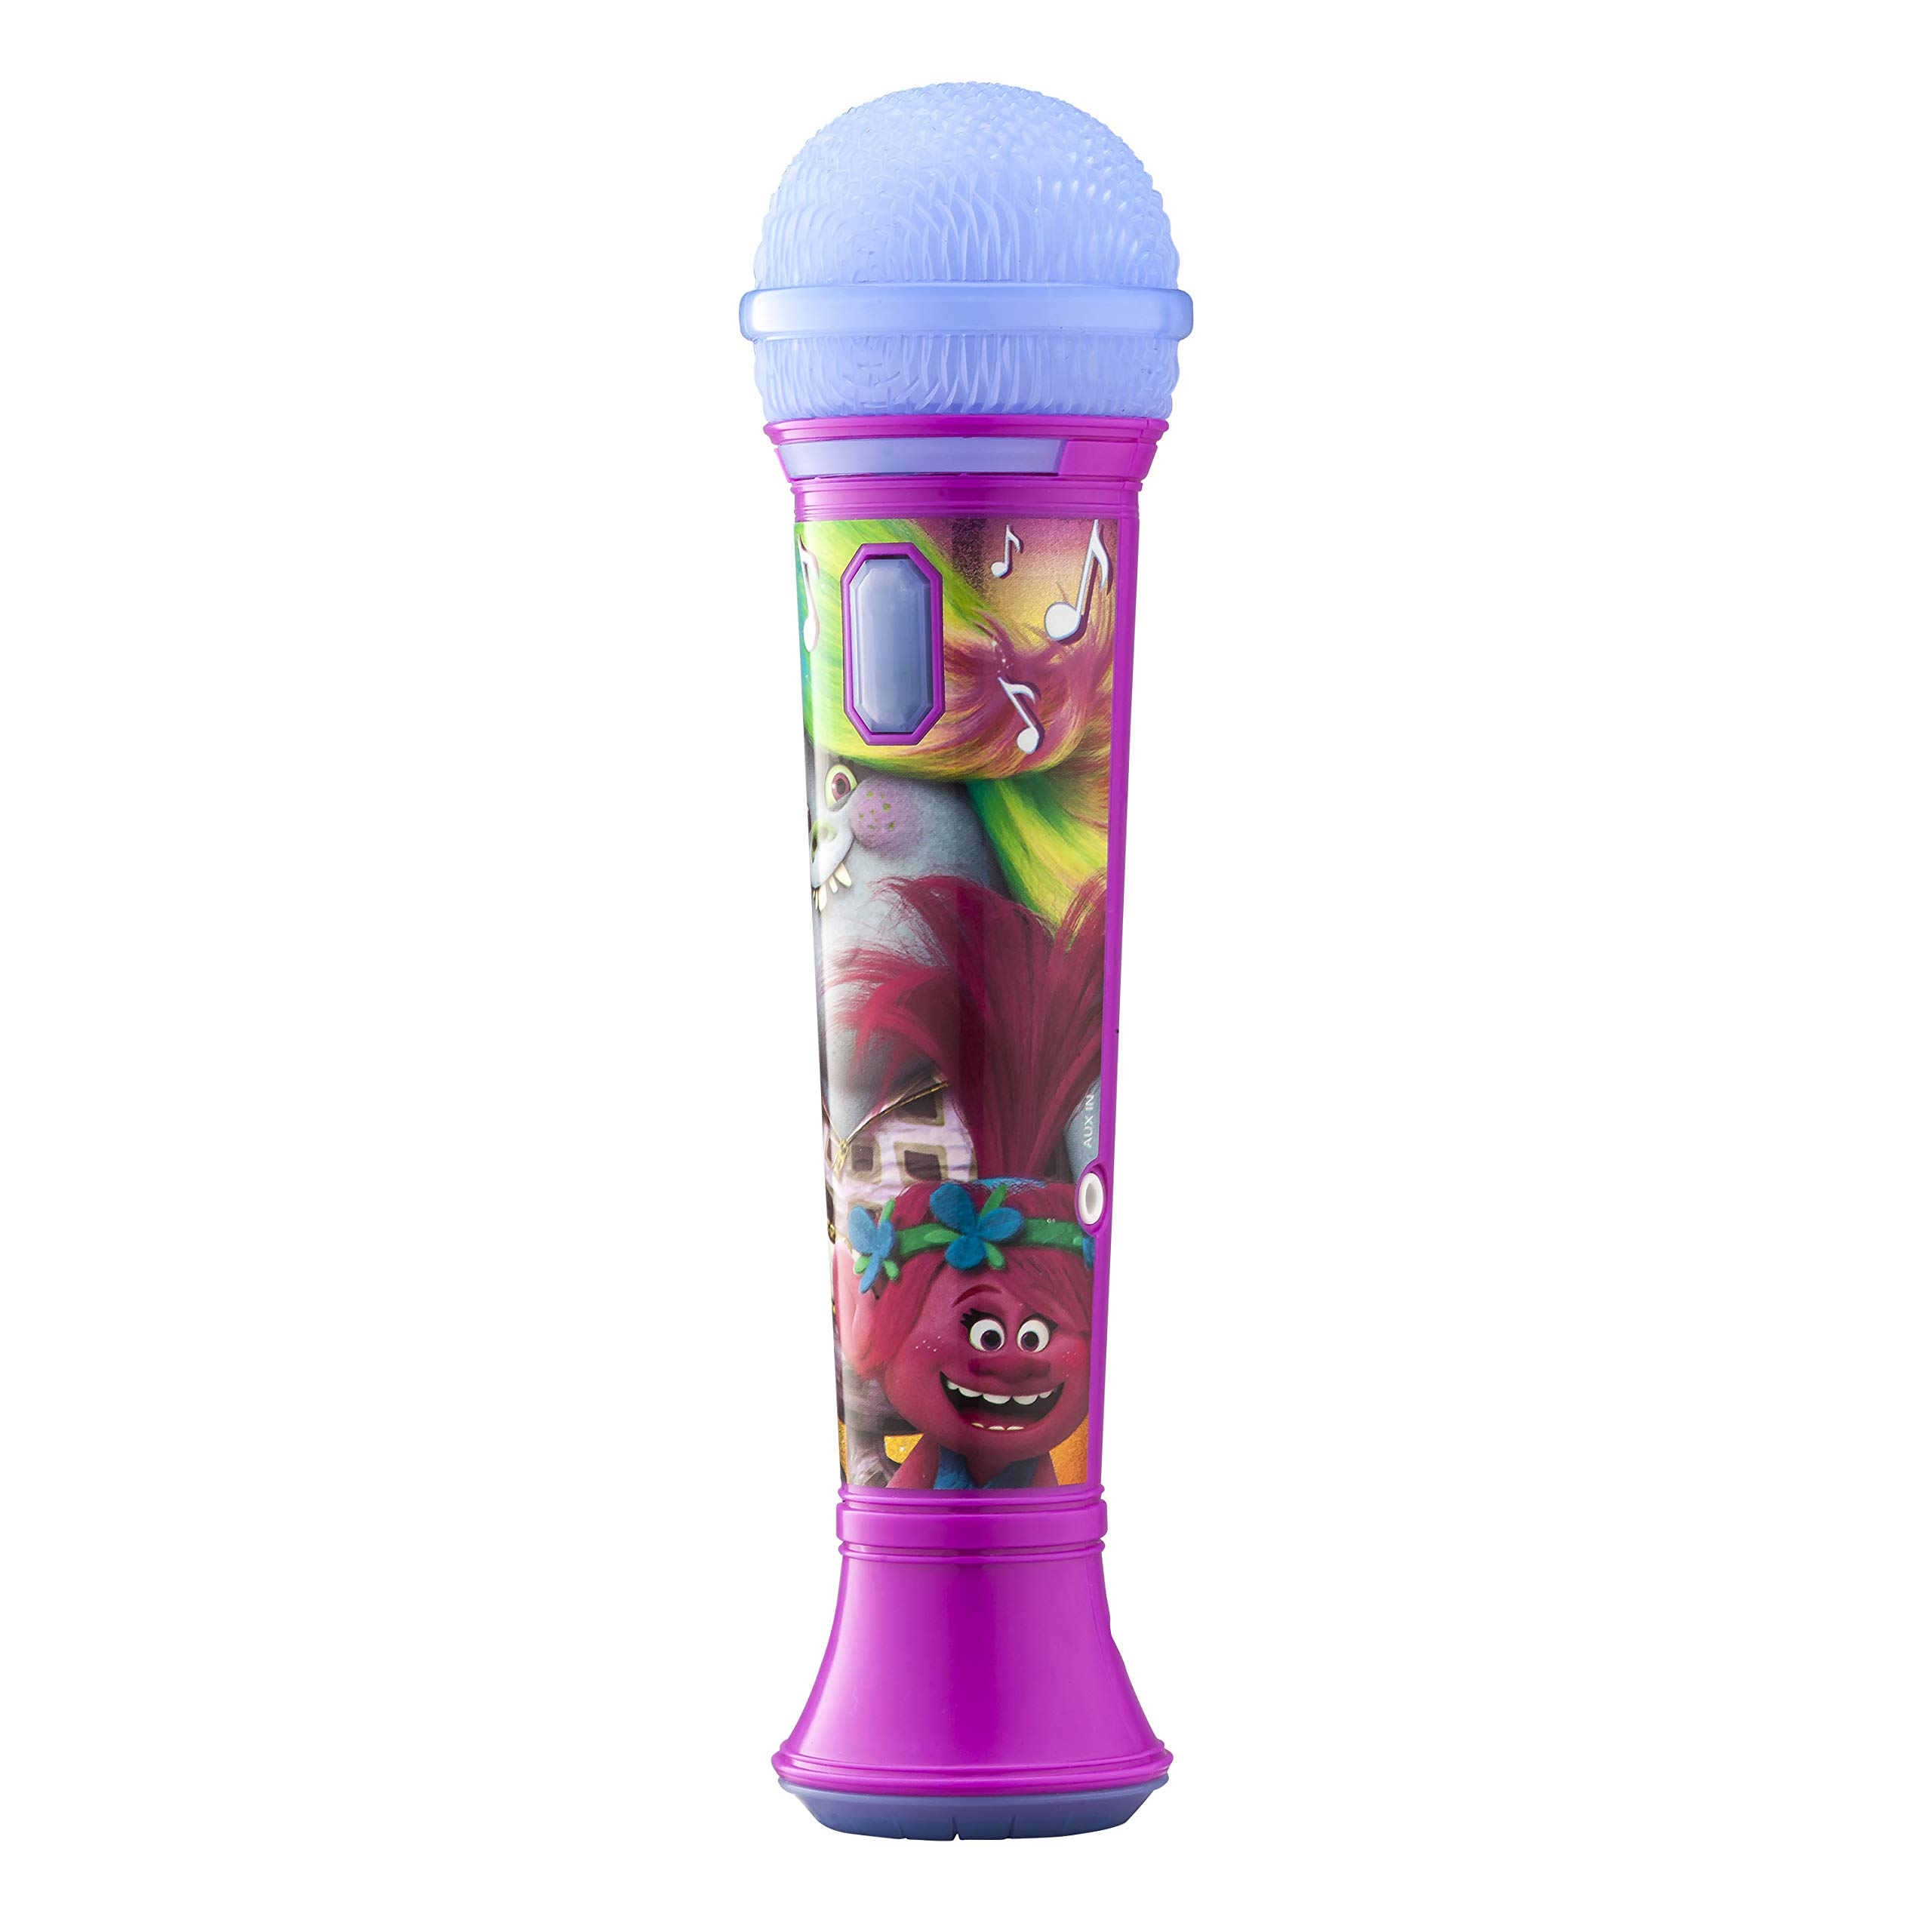 Trolls Sing Along MP3 Microphone Sing to Built in Music or Connect Your Audio Device and Sing to Whatever You Like by eKids (Image #2)